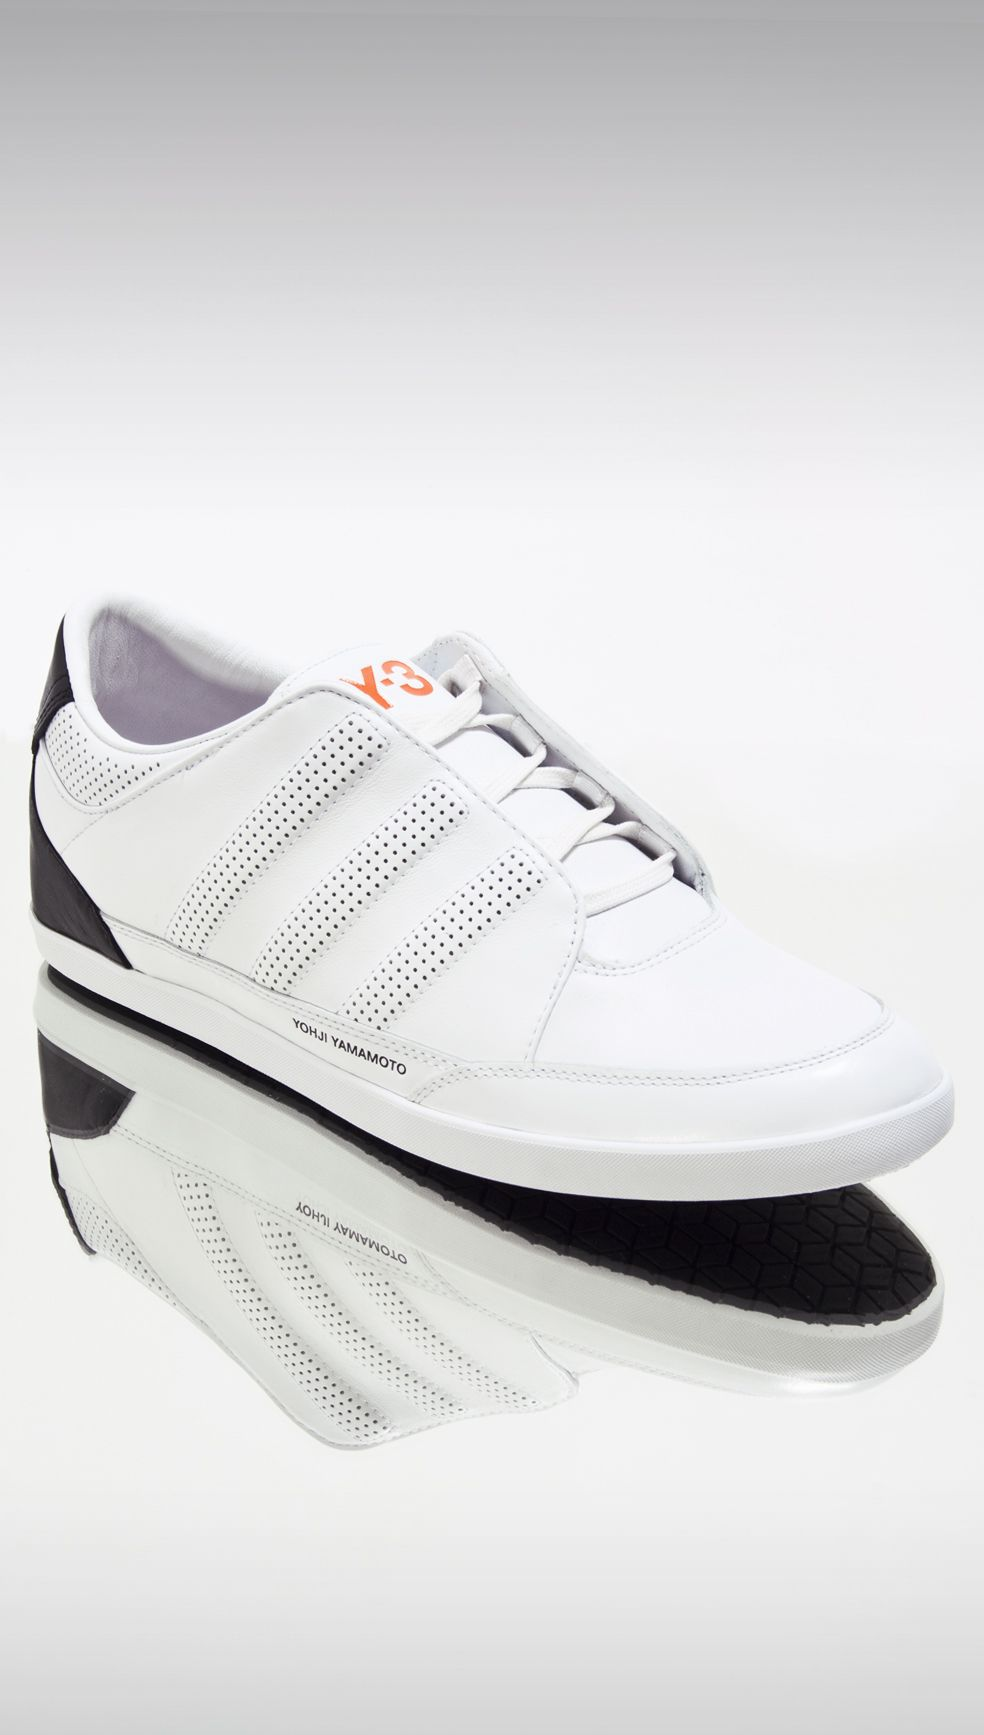 345c9bace Y-3 Honja low classic 2 Trainers - White £195.00